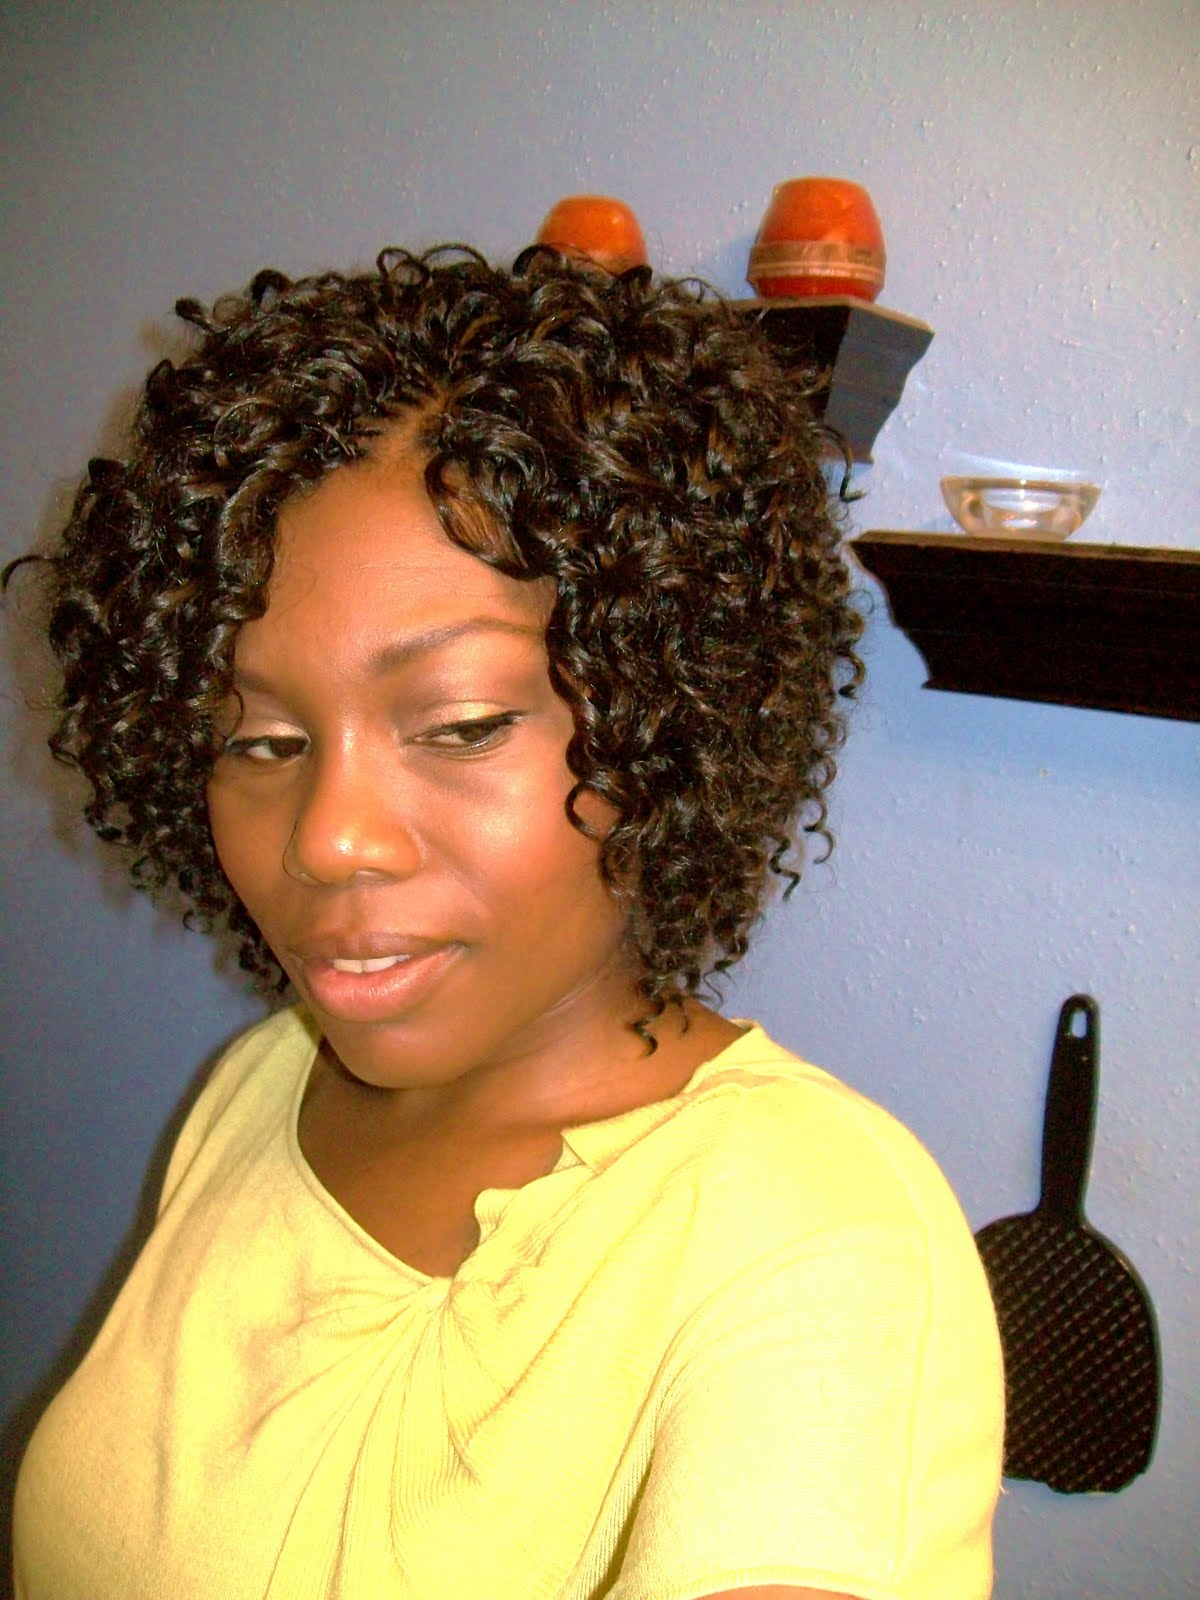 Crochet Braids In Bob Style : Protective style 13 months post - Crochet braids (FAV style)